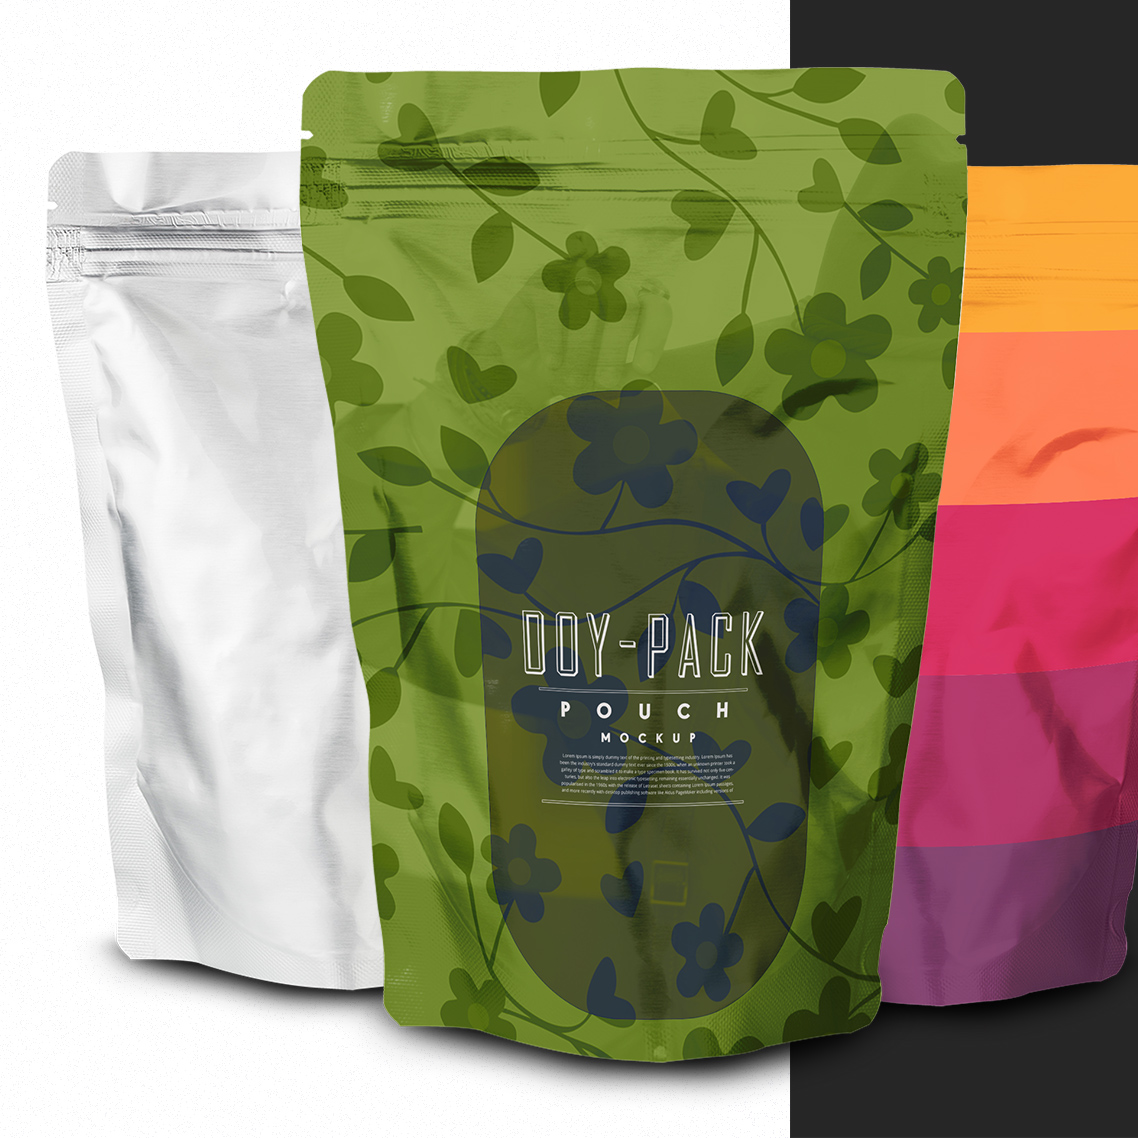 doy pack pouch mockup